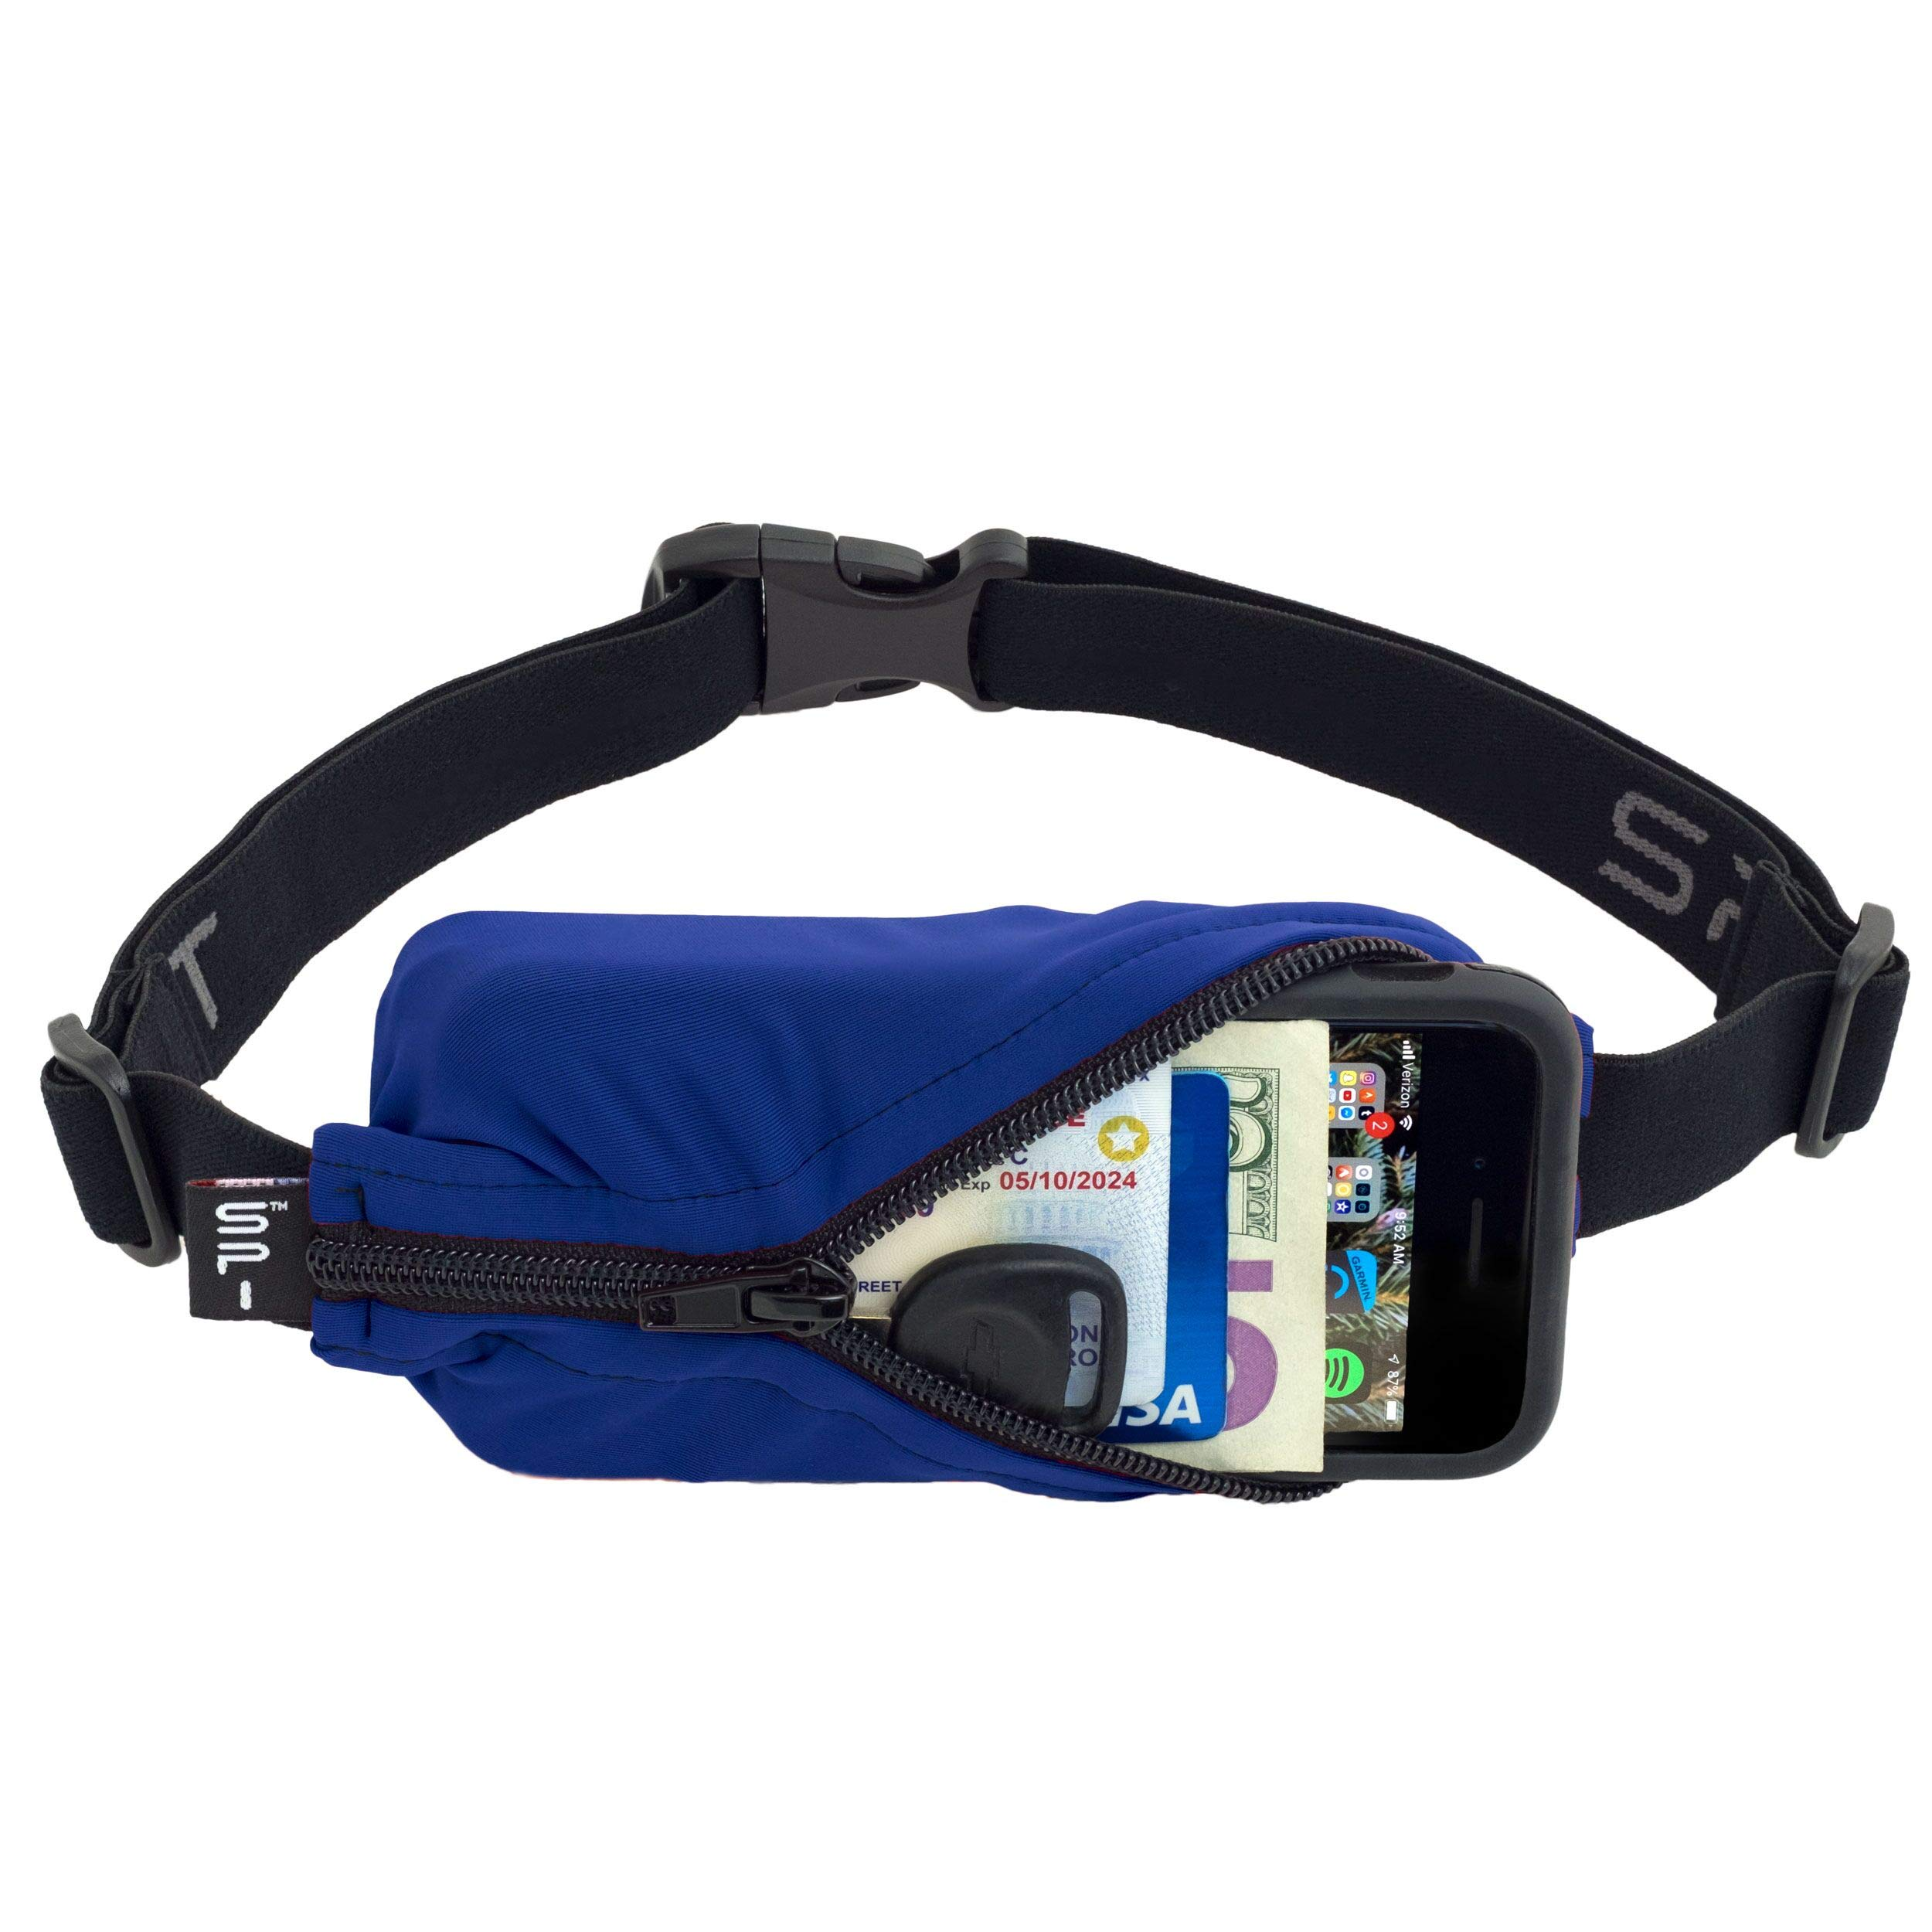 SPIbelt Sports/Running Belt: Original - No-Bounce Running Belt for Runners, Athletes and Adventurers - Fits iPhone 6 and Other Large Phones, Blue with Black Zip by SPIbelt